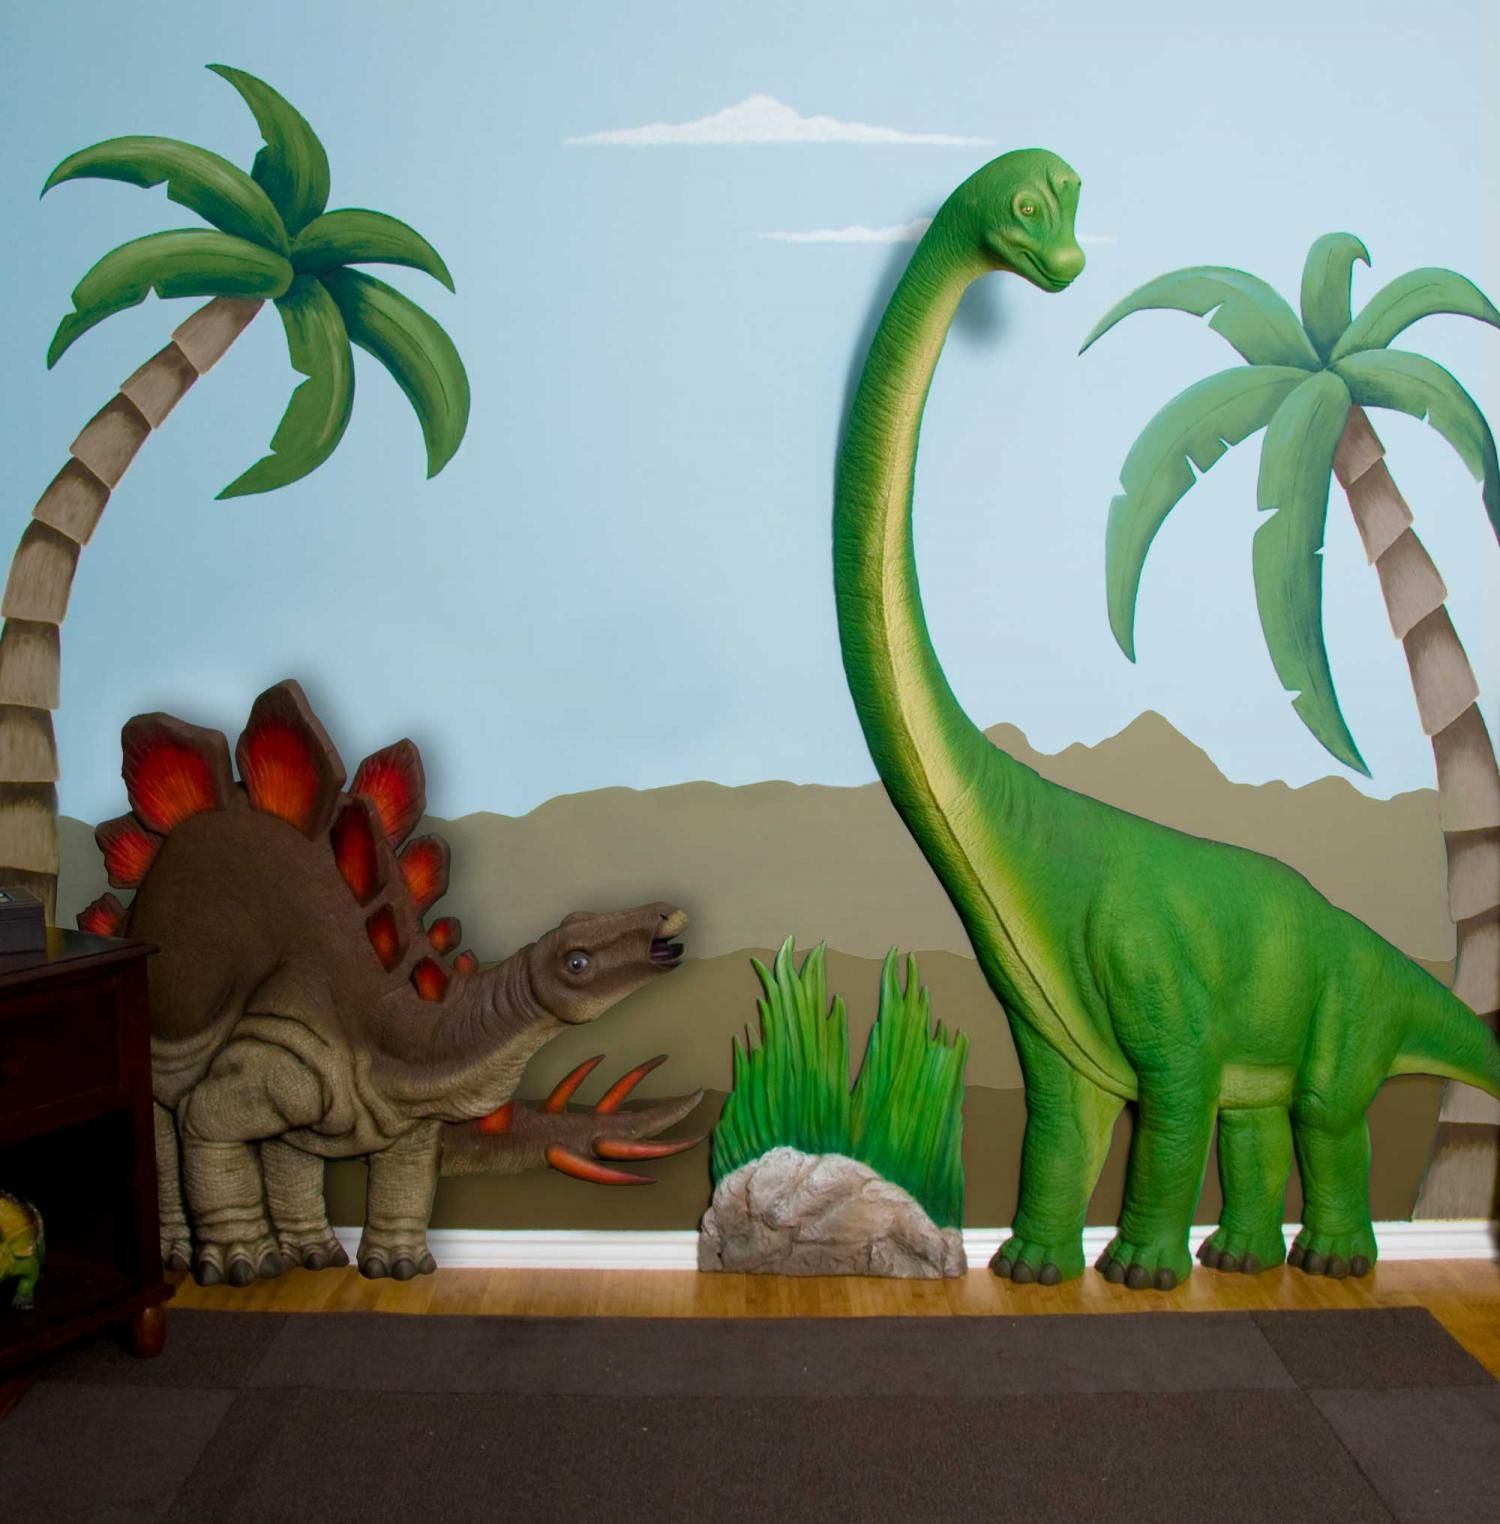 LOVE THIS Wonder If I Have A Sponsor Who Wants To Gift This To - 3d dinosaur wall decalsd dinosaur wall stickers for kids bedrooms jurassic world wall